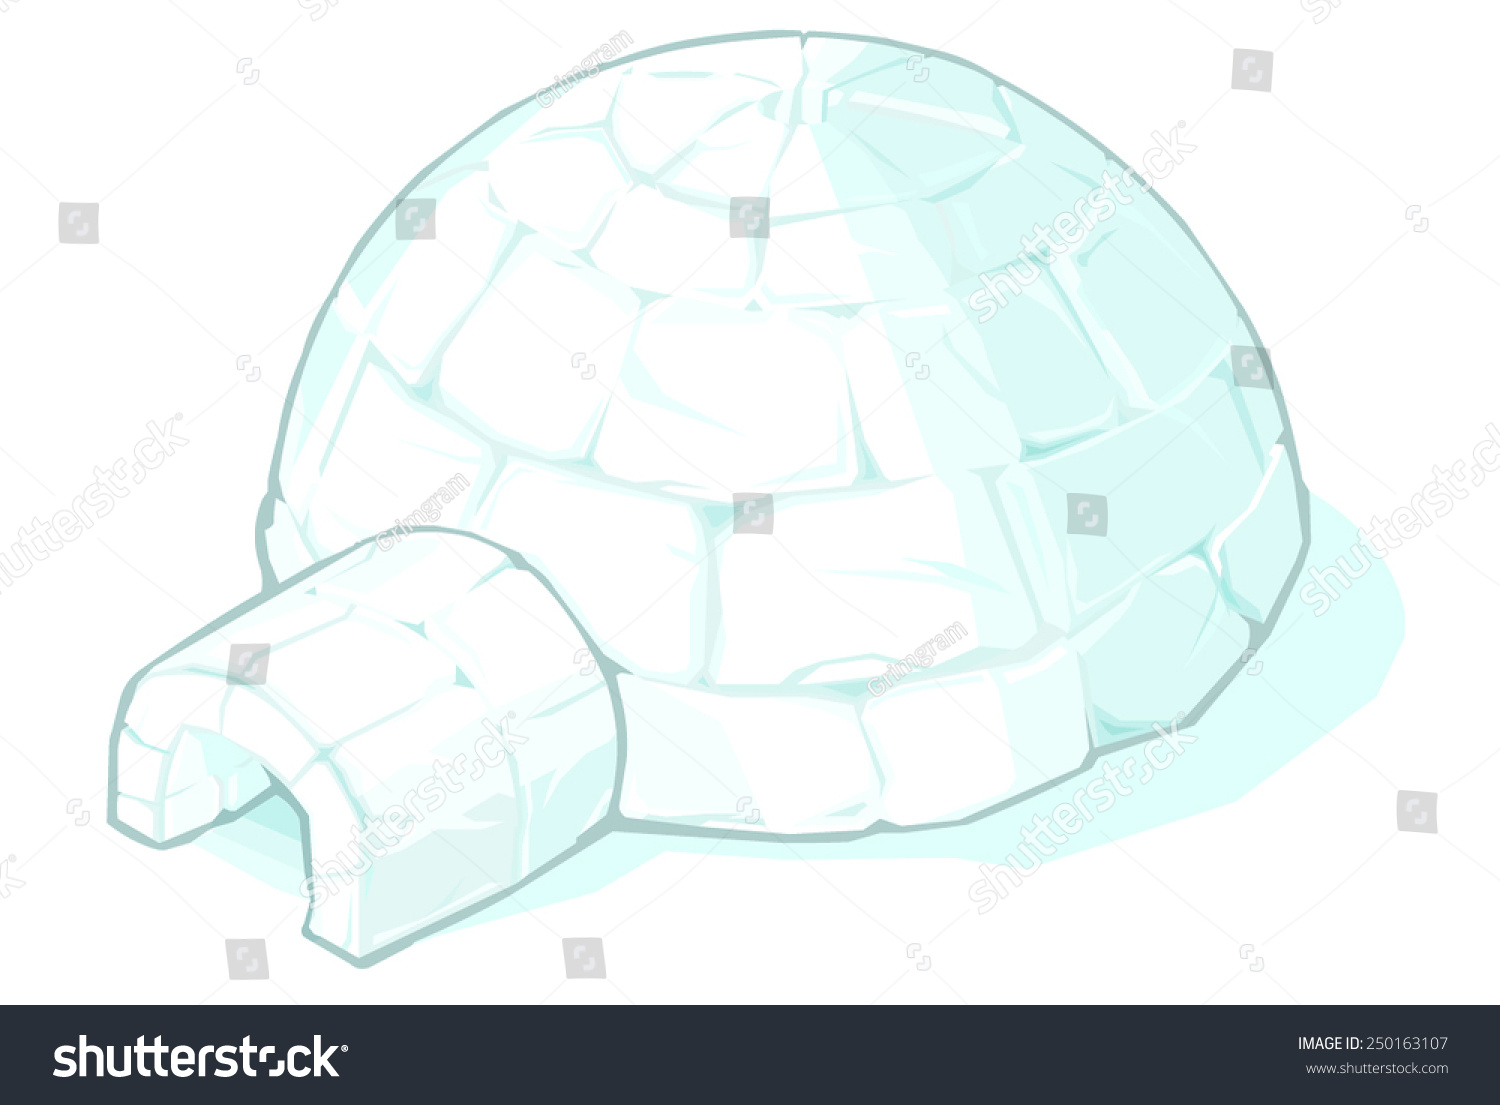 Vector illustration igloo igloo igloo house stock vector 250163107 vector illustration of an igloo igloo igloo house made from ice blocks pooptronica